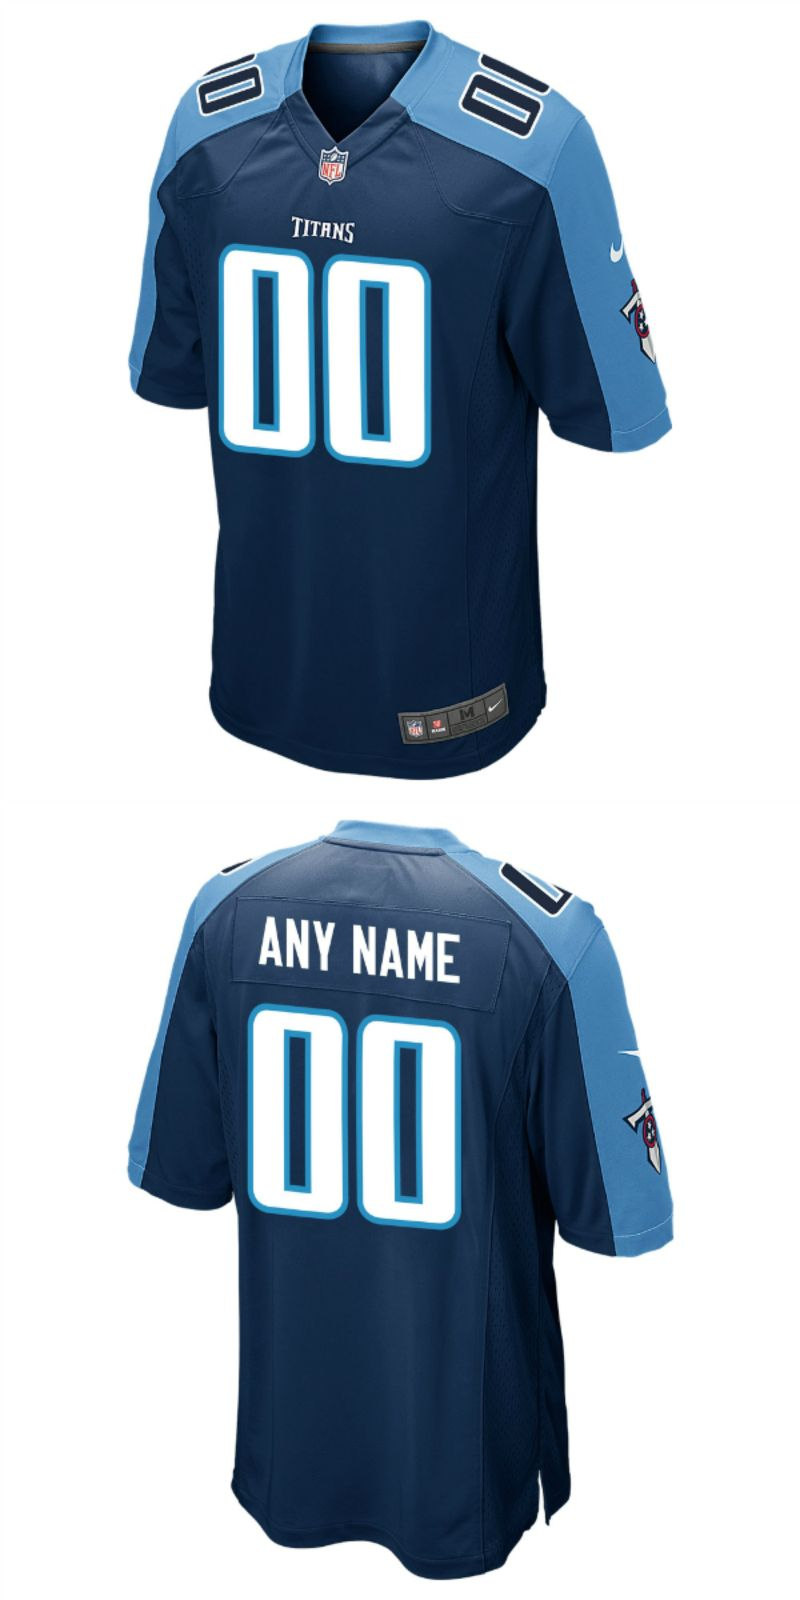 buy popular 250f4 f77dd UP TO 70% OFF. Men's Tennessee Titans Nike Navy Custom Game ...